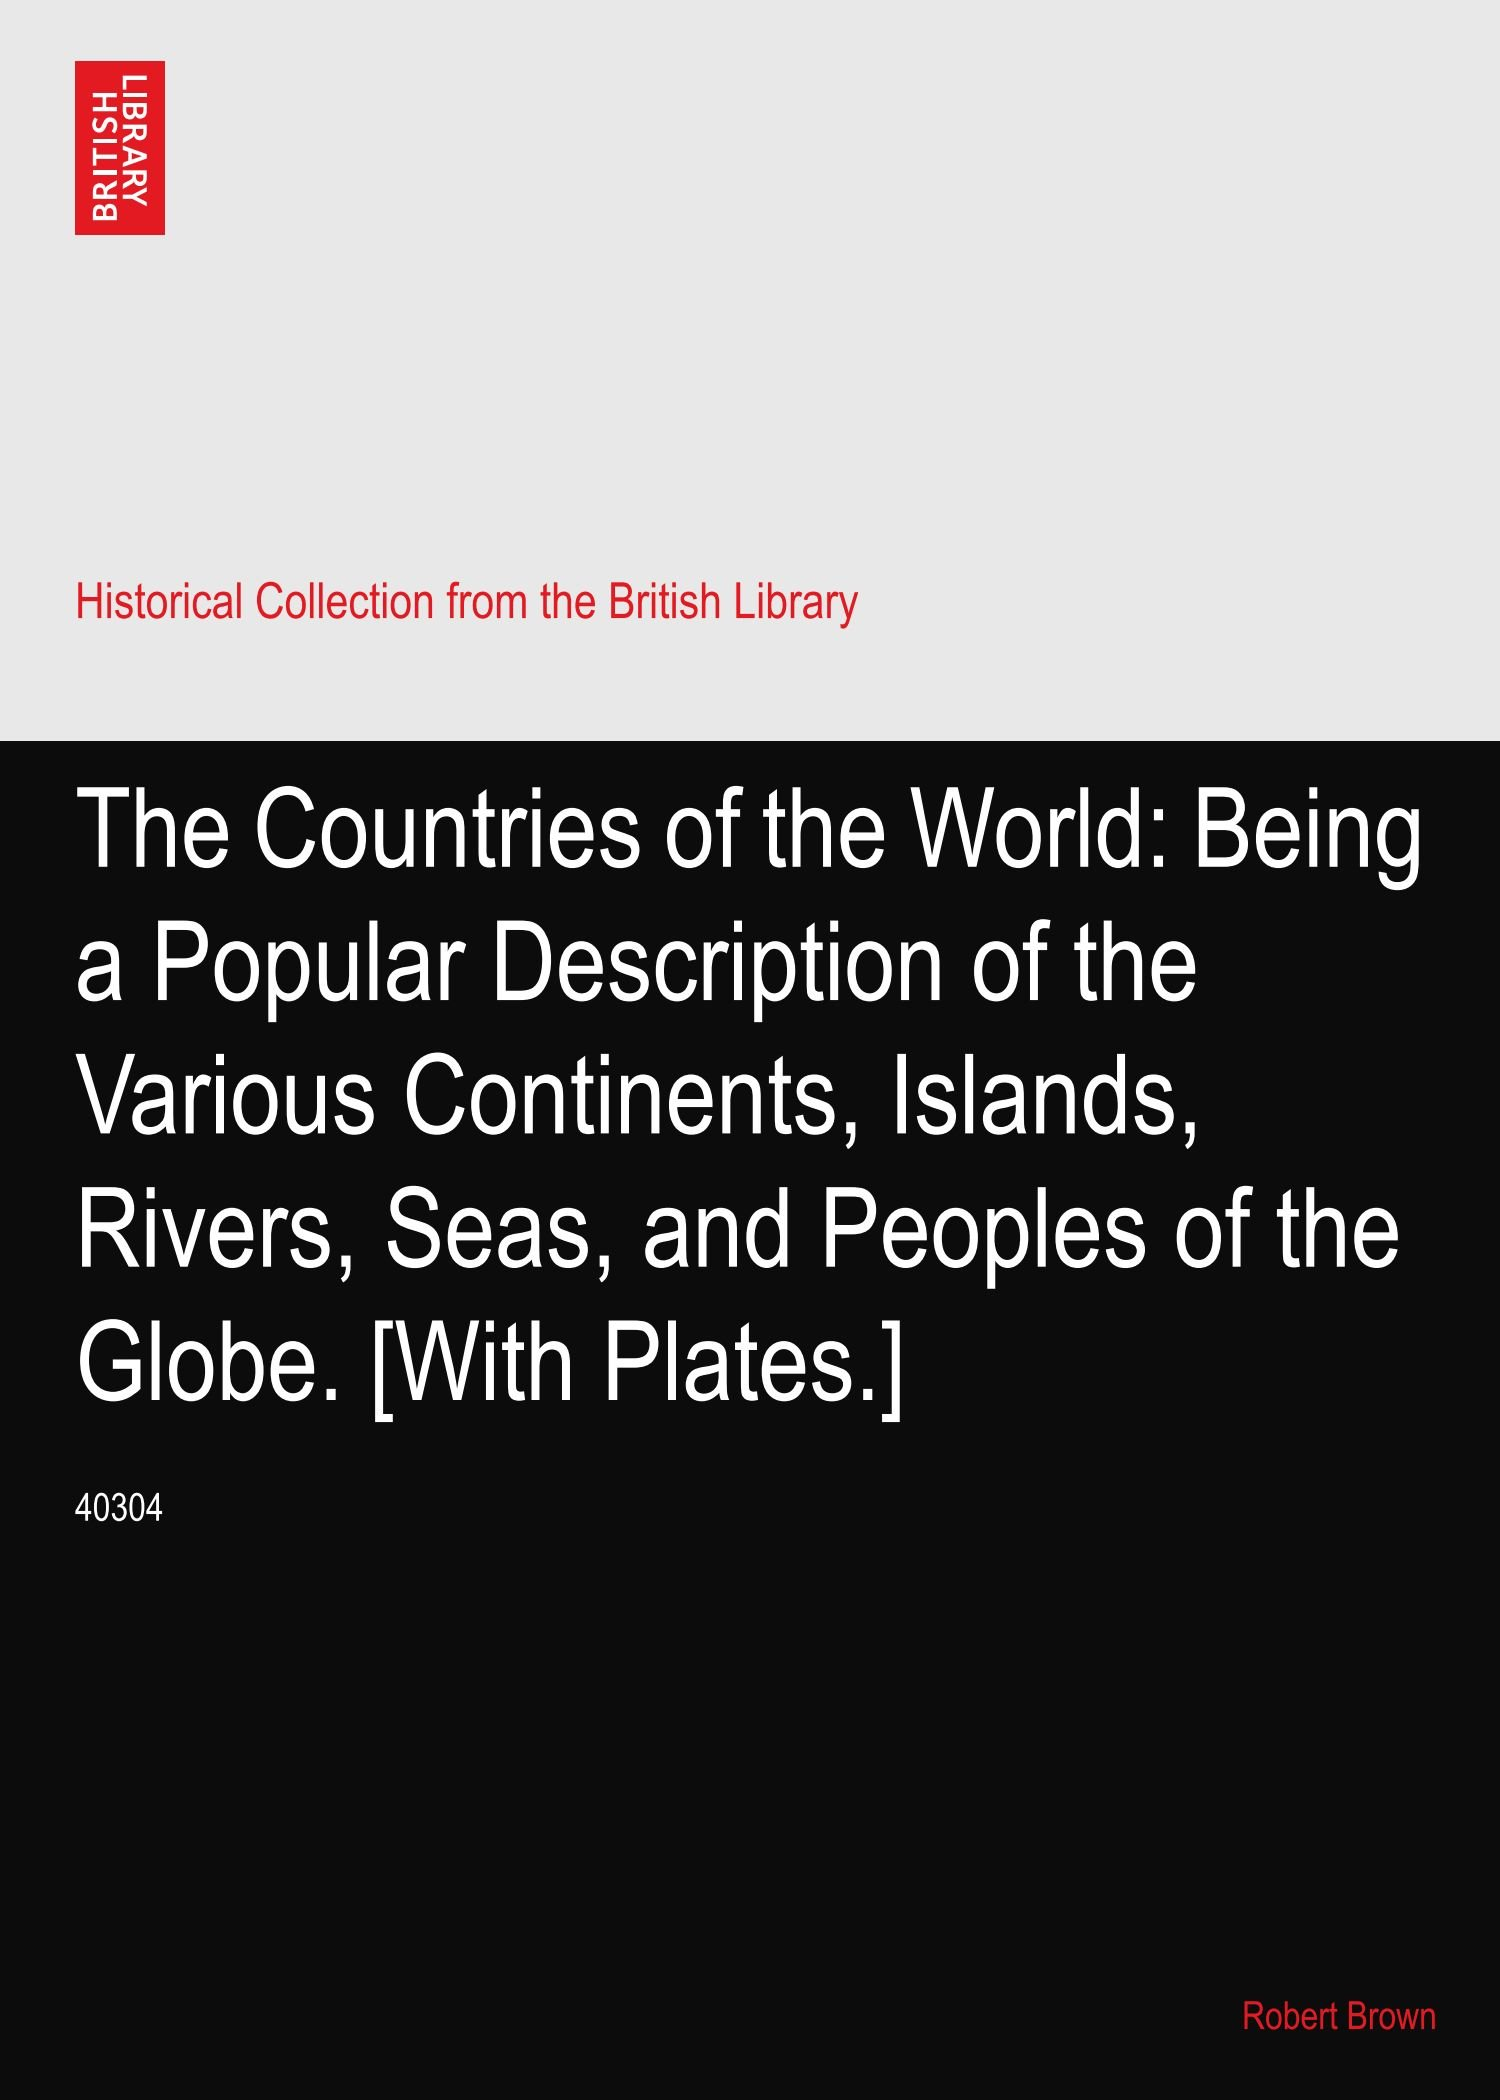 The Countries of the World: Being a Popular Description of the Various Continents, Islands, Rivers, Seas, and Peoples of the Globe. [With Plates.]: 40304 PDF